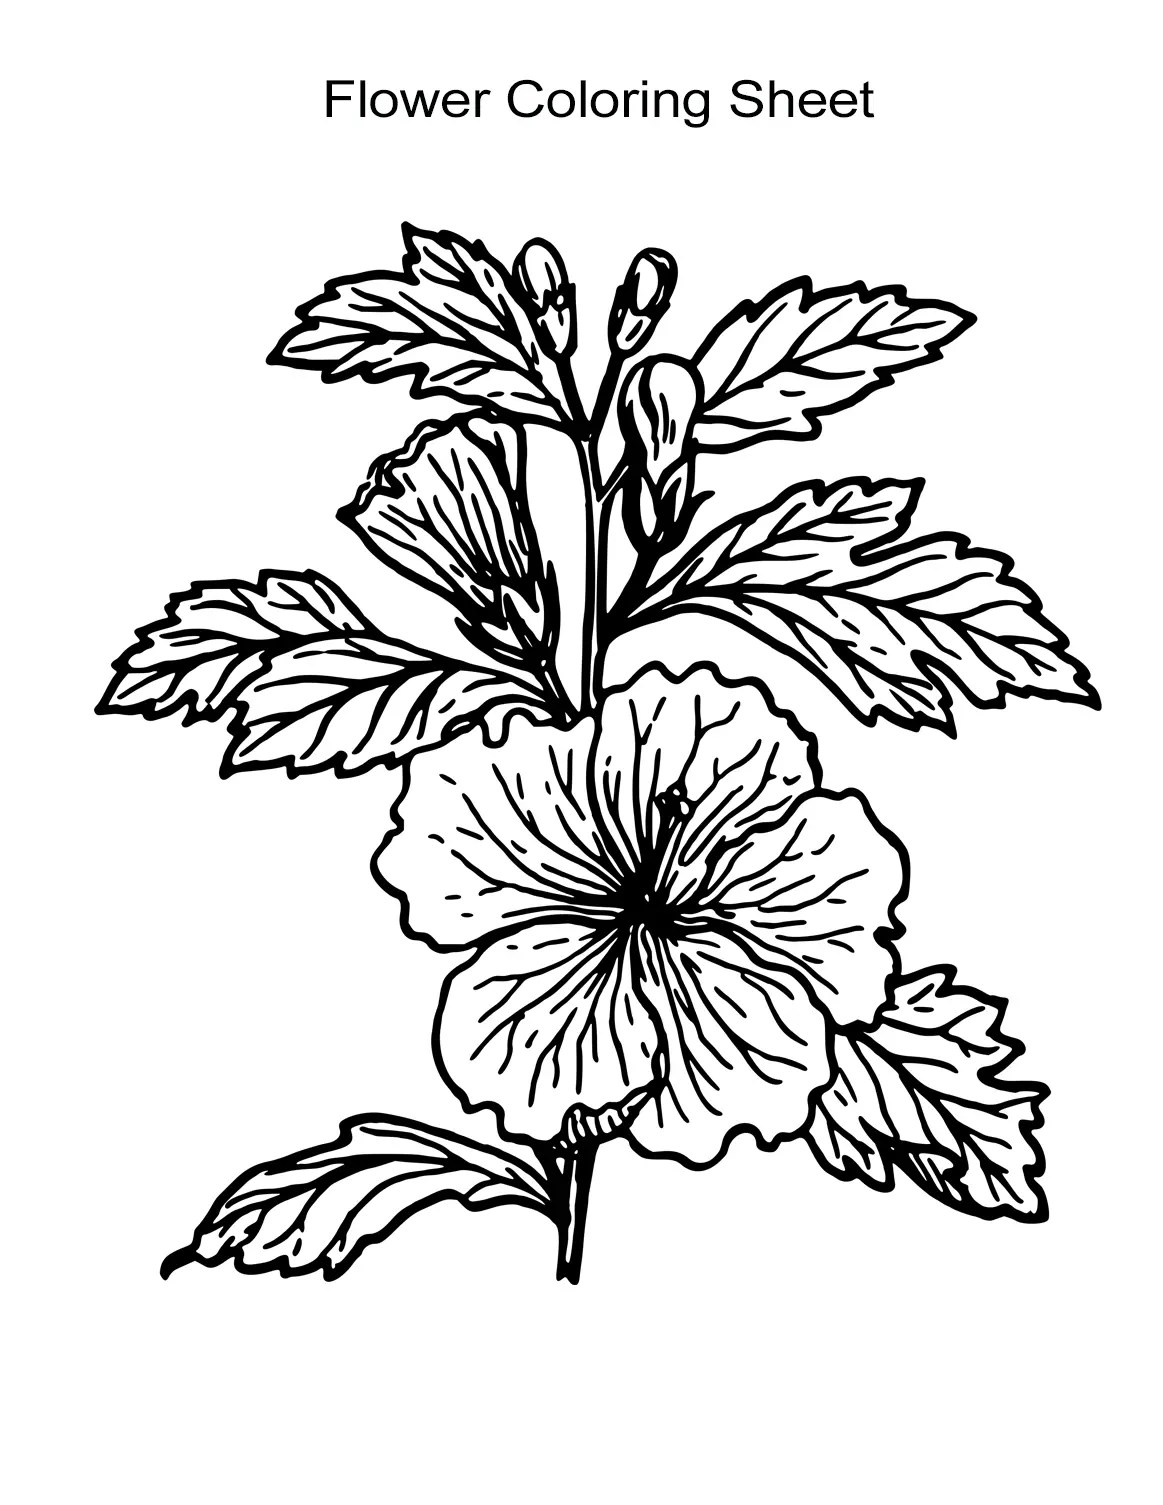 10 Flower Coloring Sheets For Girls And Boys All Esl